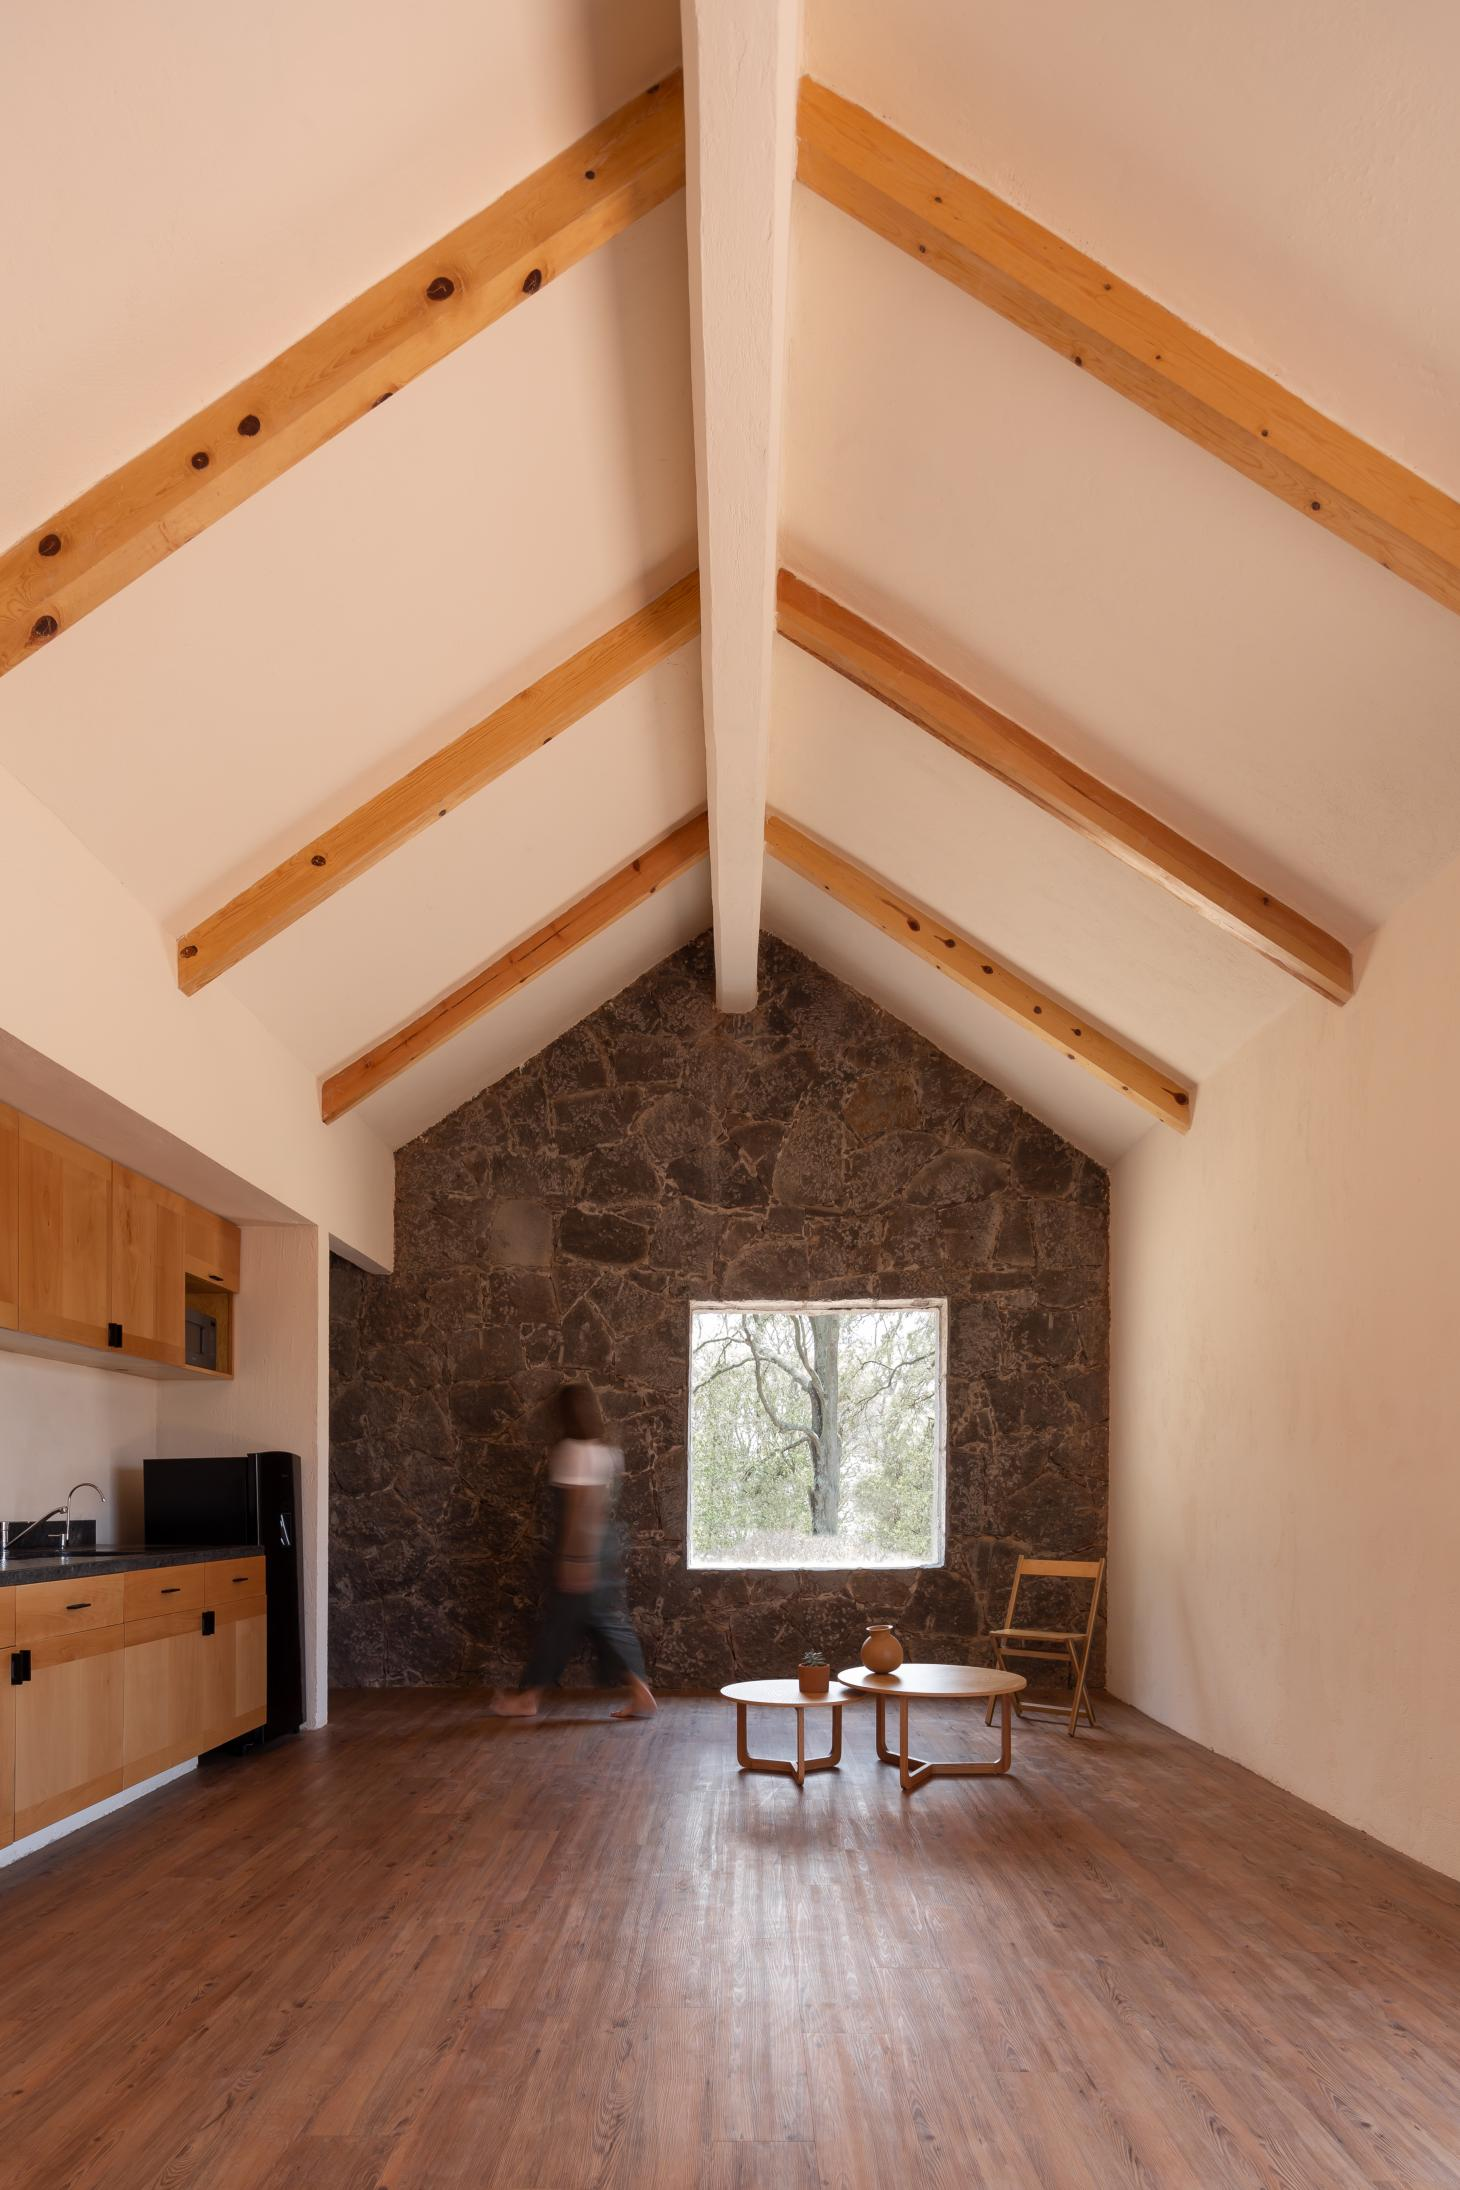 living room under pitched roof in rural Mexico house by architects Palma MX